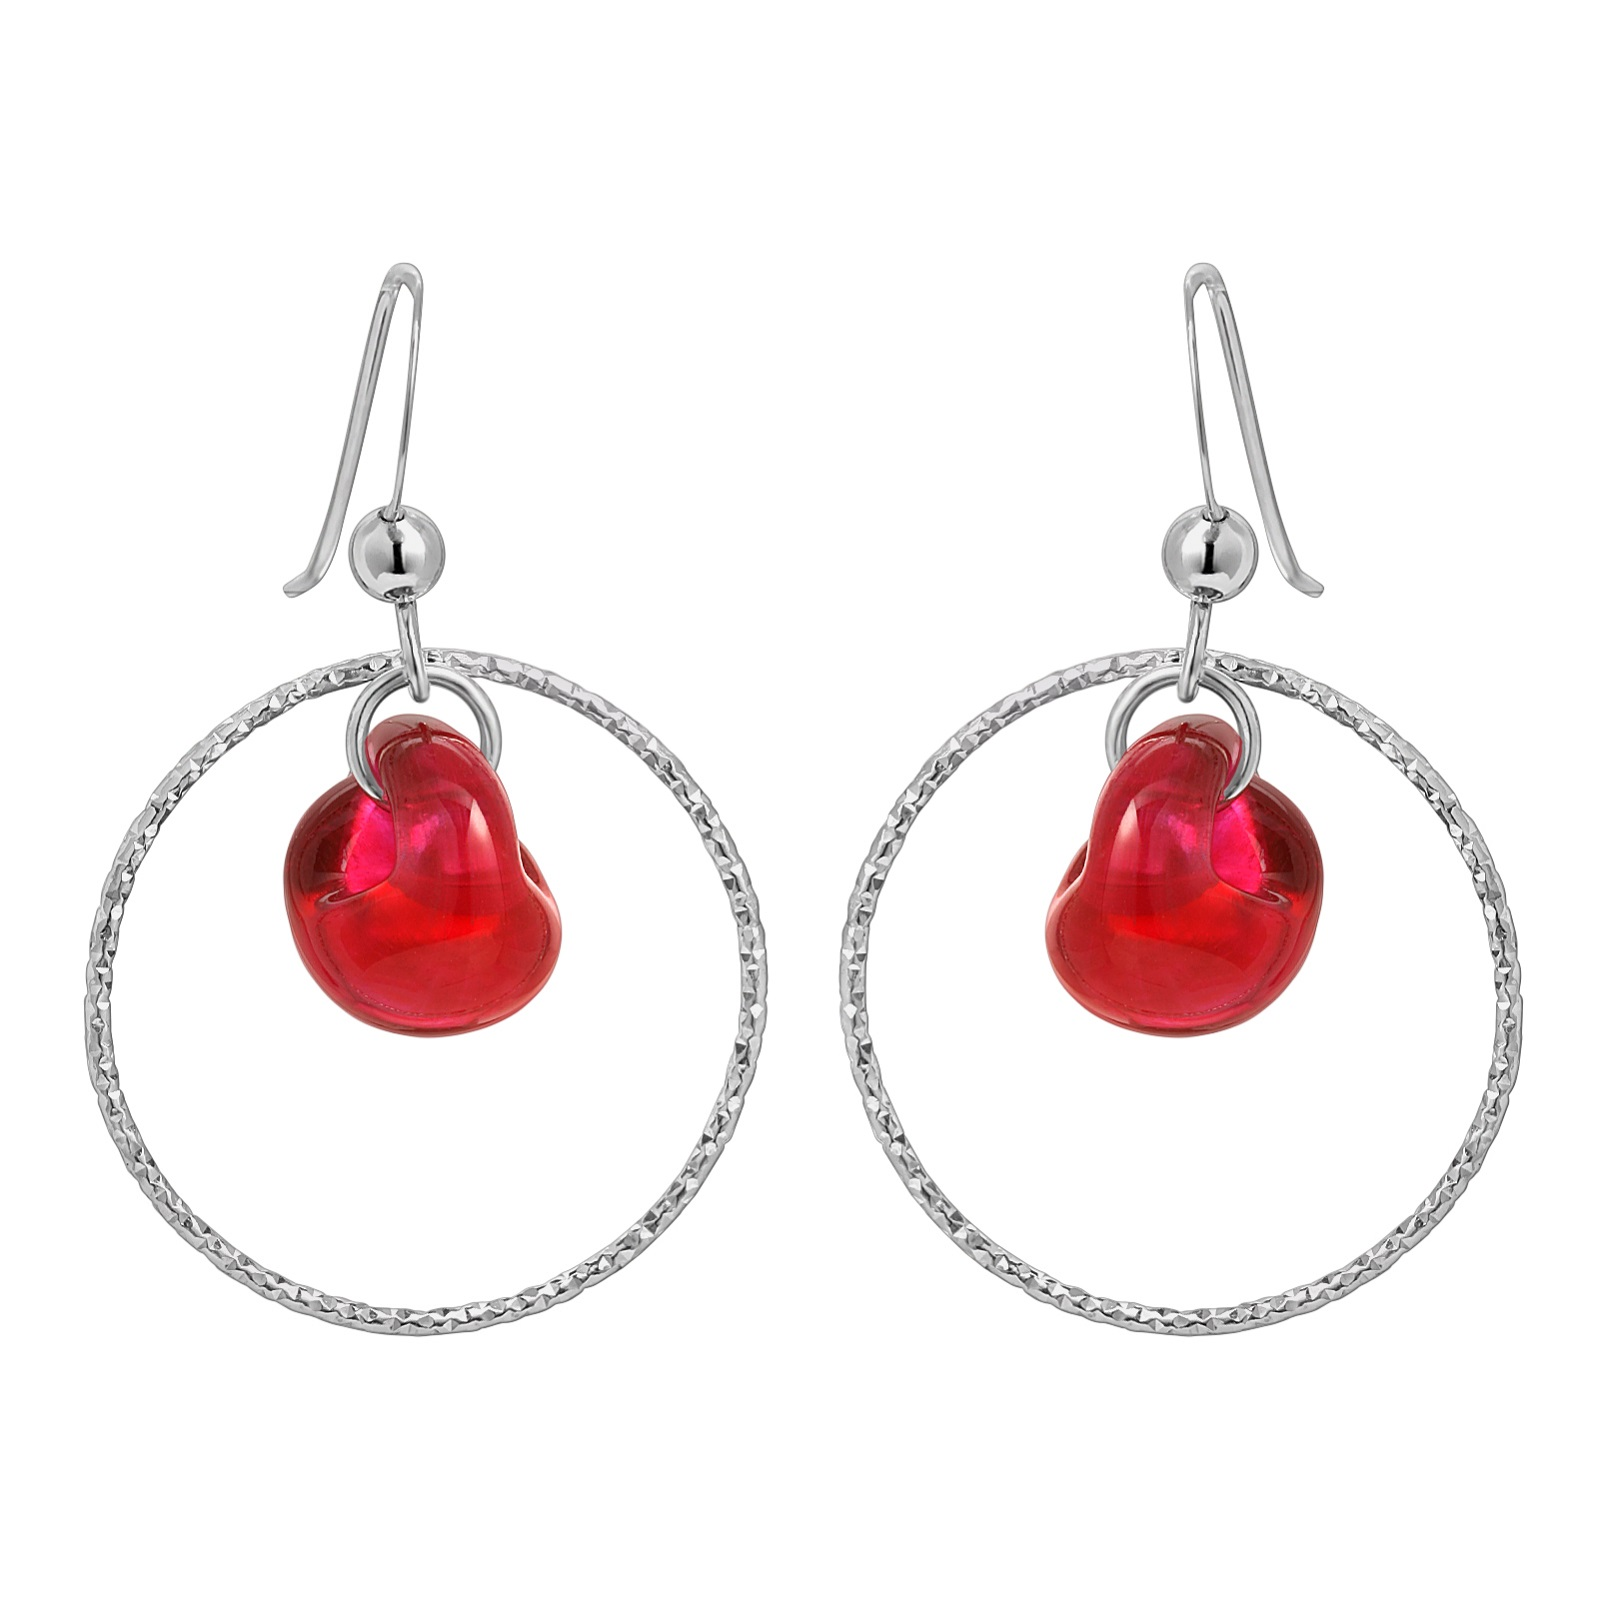 Diamond Cut Hoops Earrings - Fireball Red